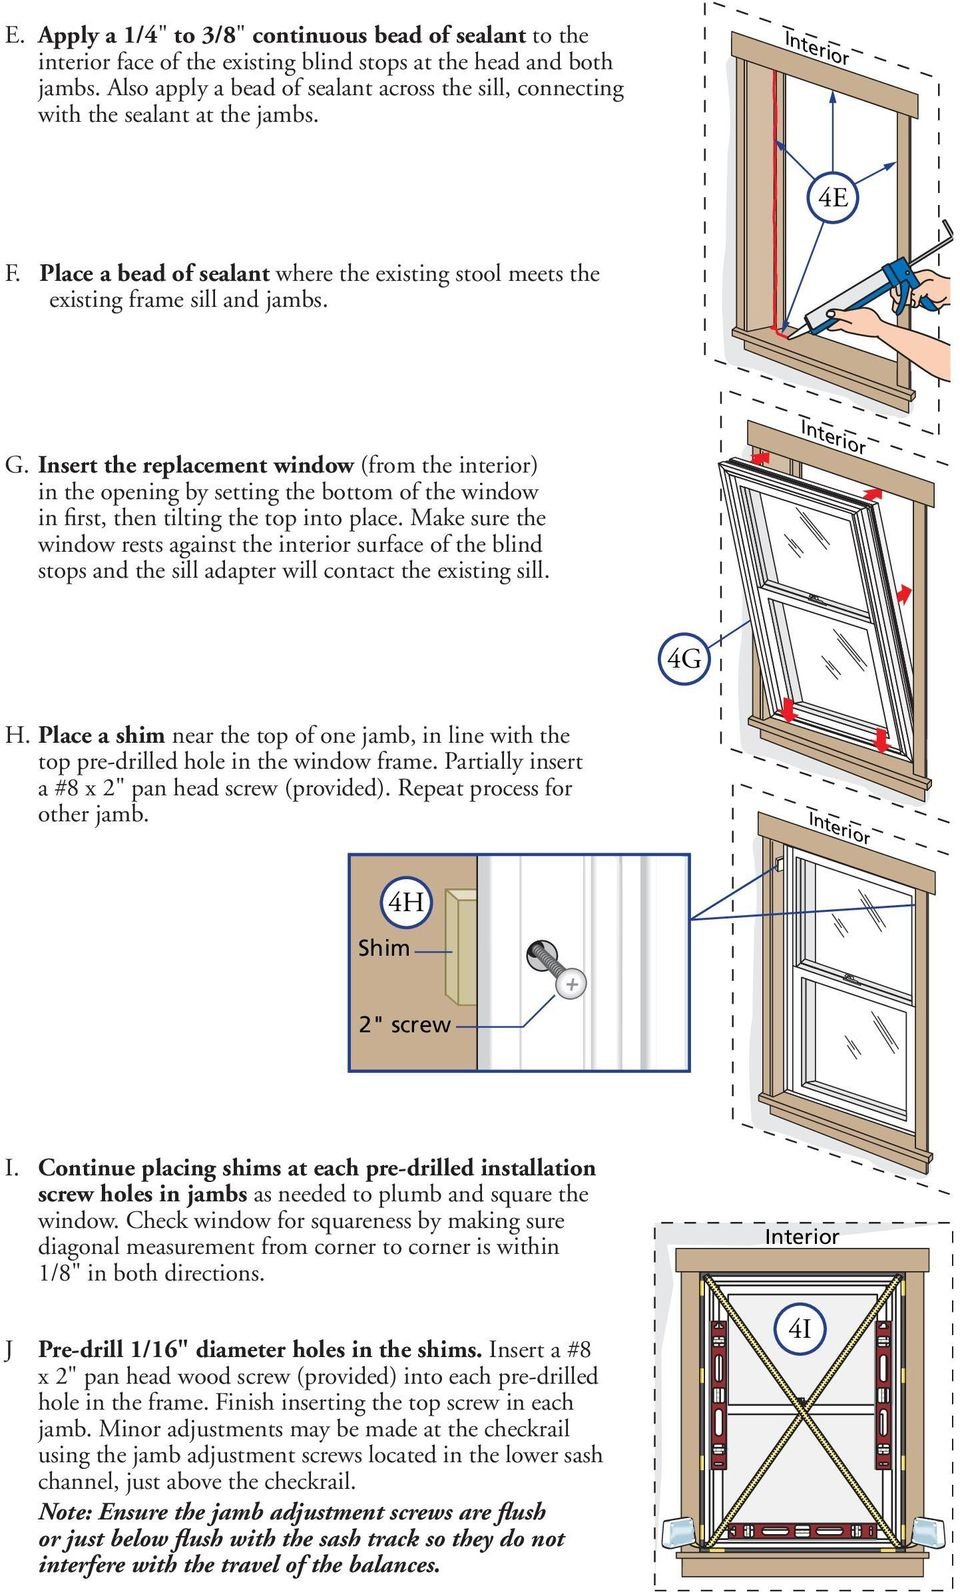 Make sure the window rests against the interior surface of the blind Place a shim near the top of one jamb, in line with the other jamb. I.